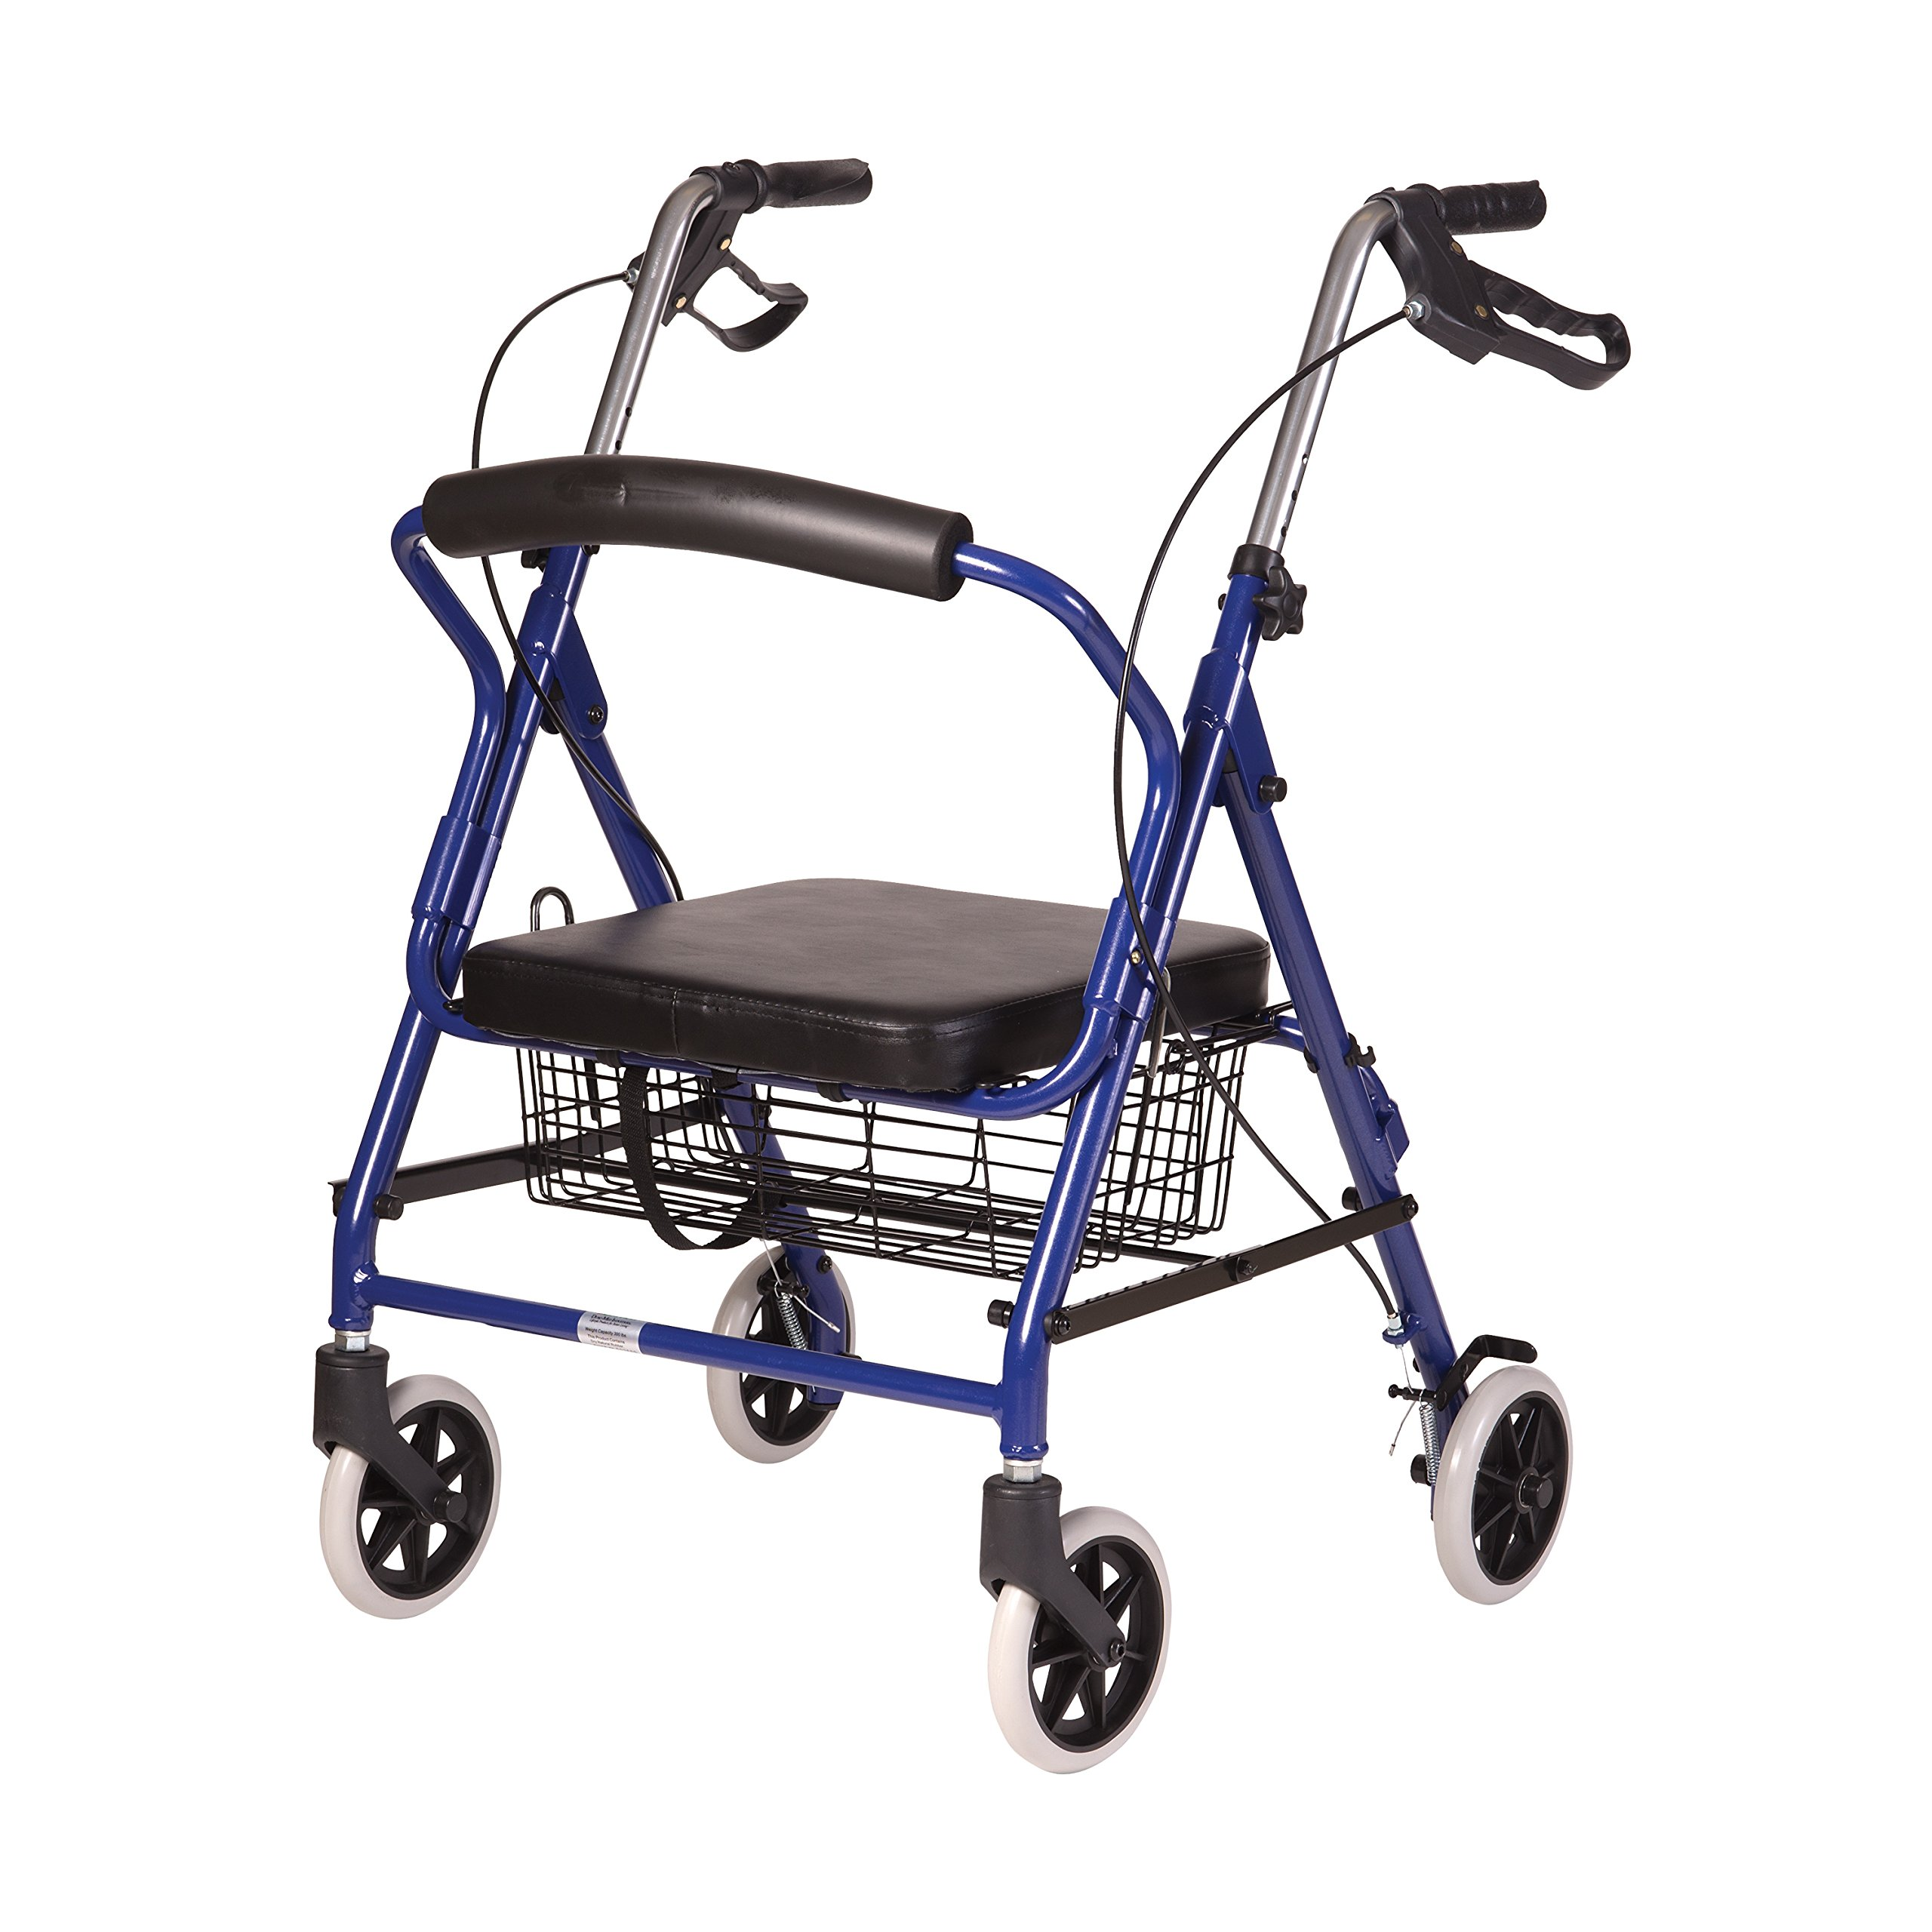 DMI Ultra Lightweight Folding Aluminum Hemi Rollator with Padded Seat, Basket and Adjustable Handle Height, Mobility Walker, Easily Fords, 300 pound Weight Capacity, Royal Blue